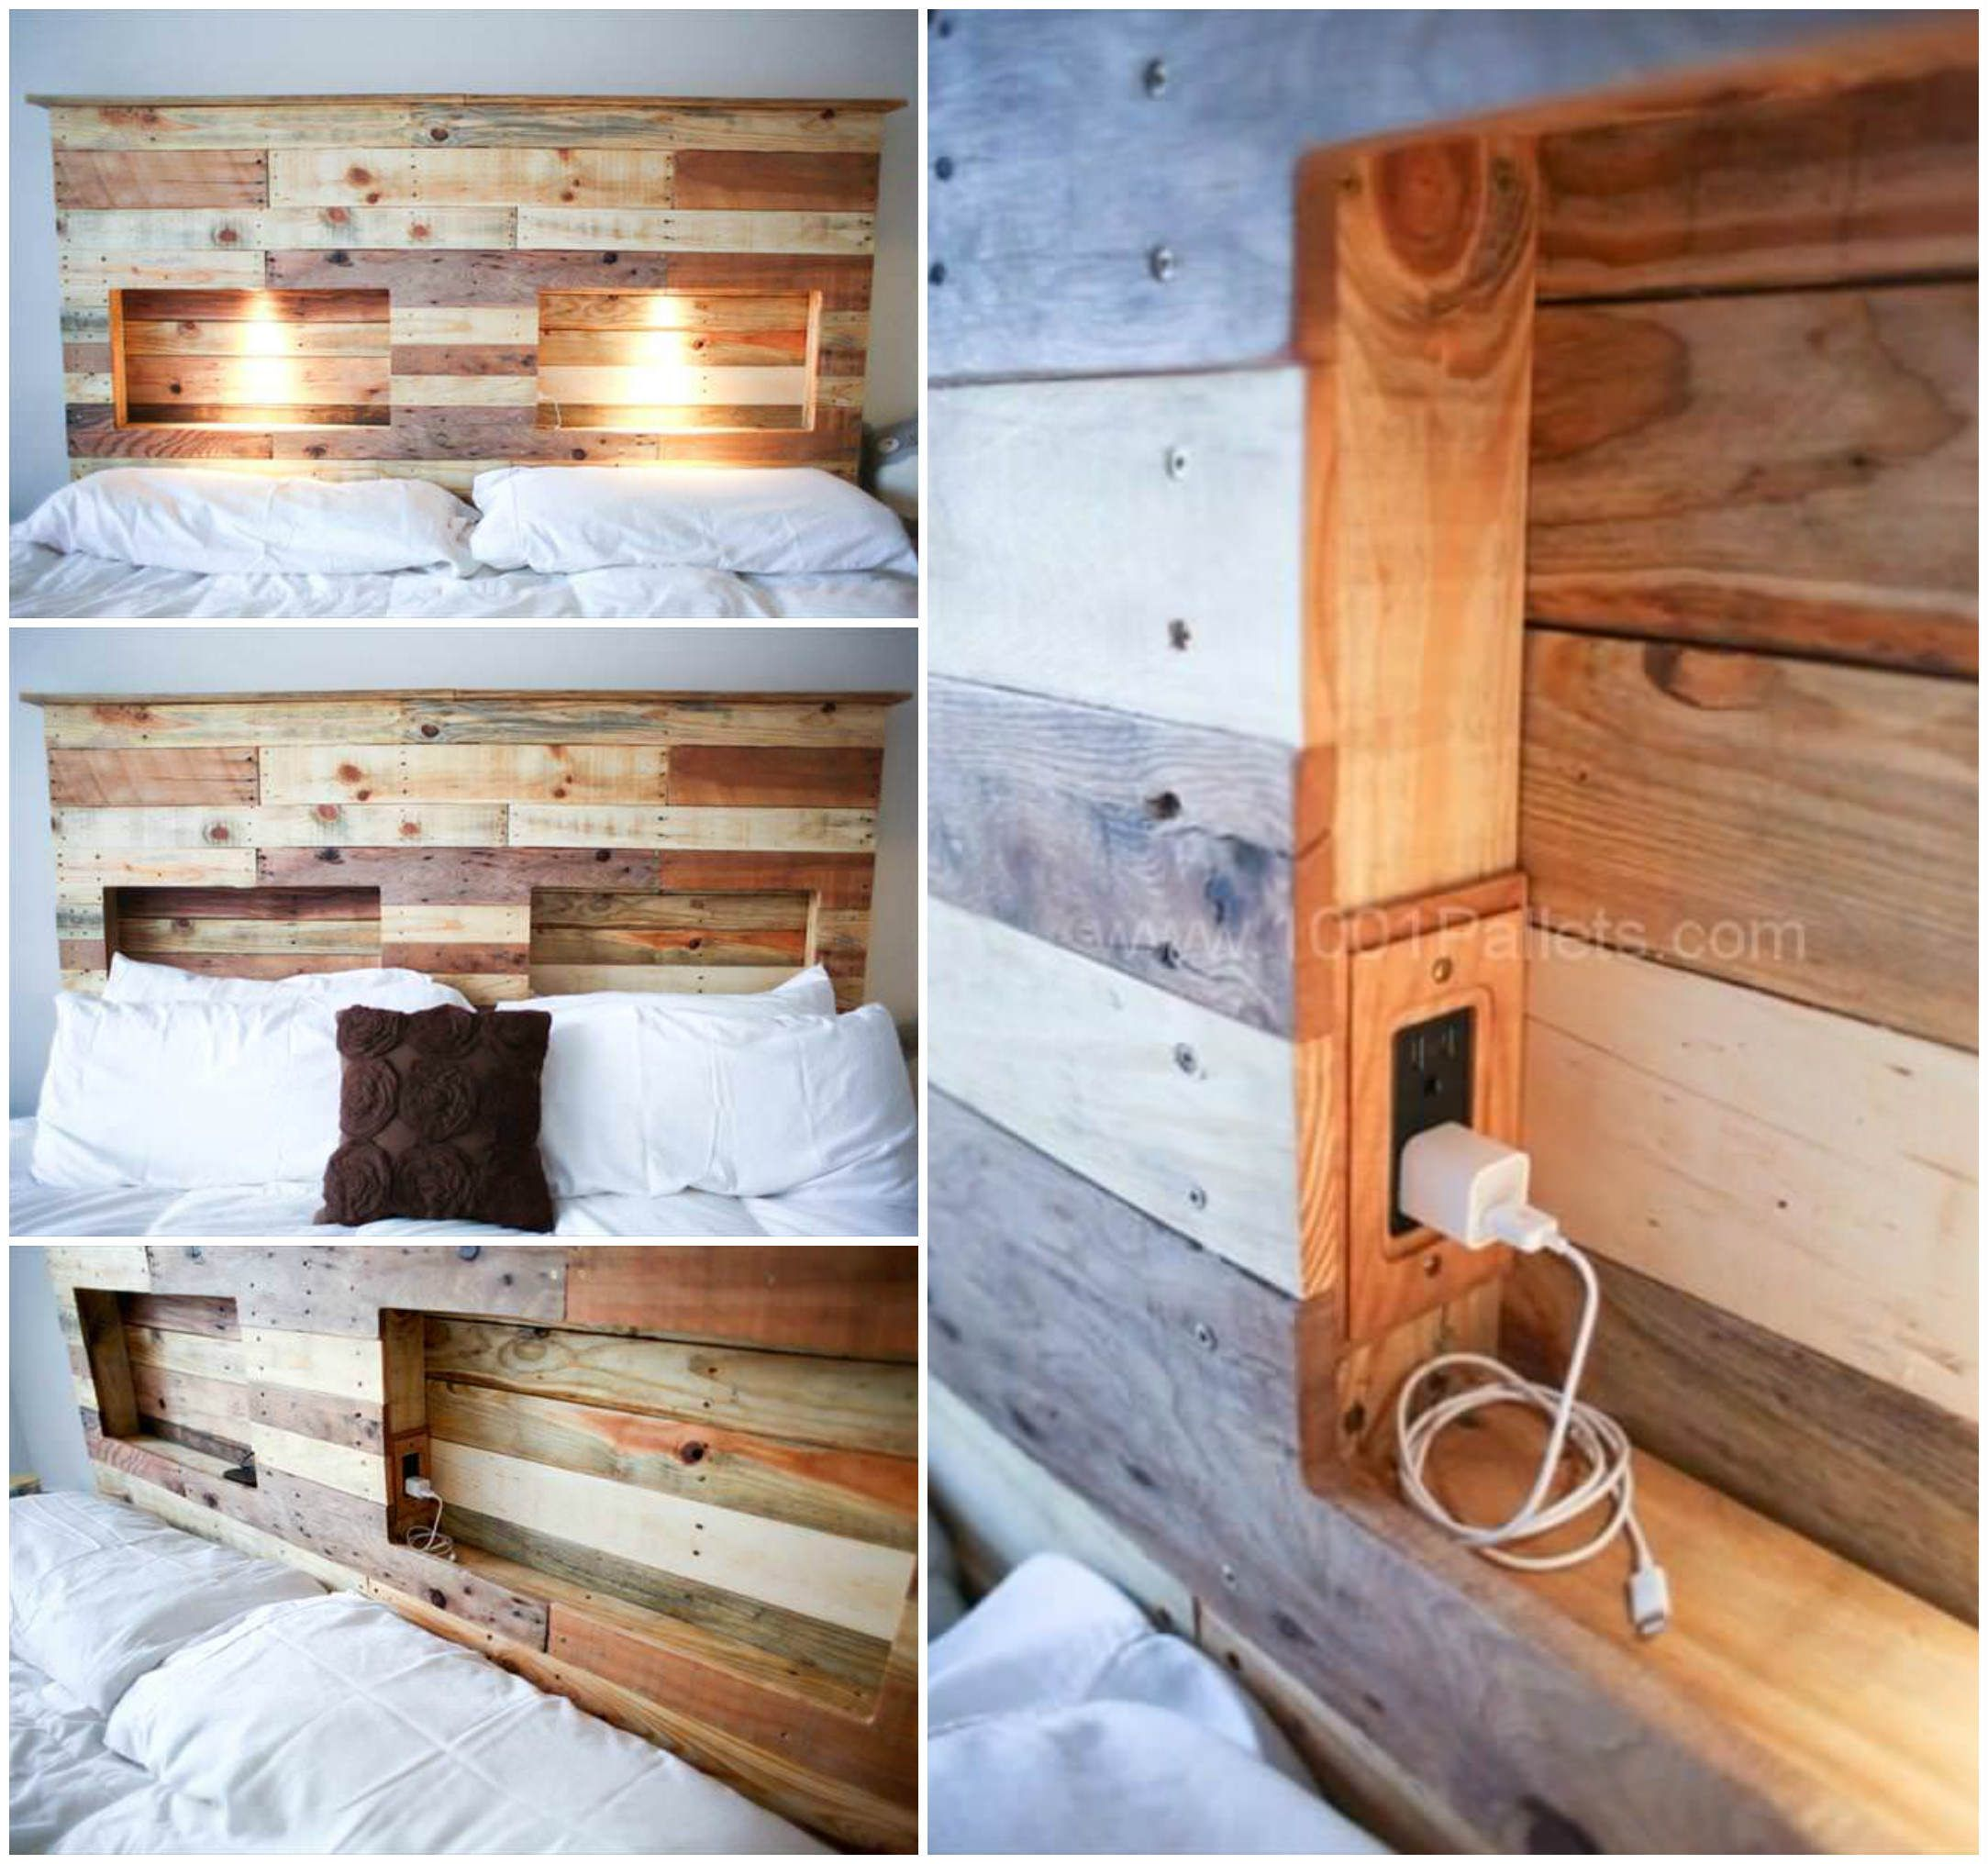 A cool headboard made from recycled pallets